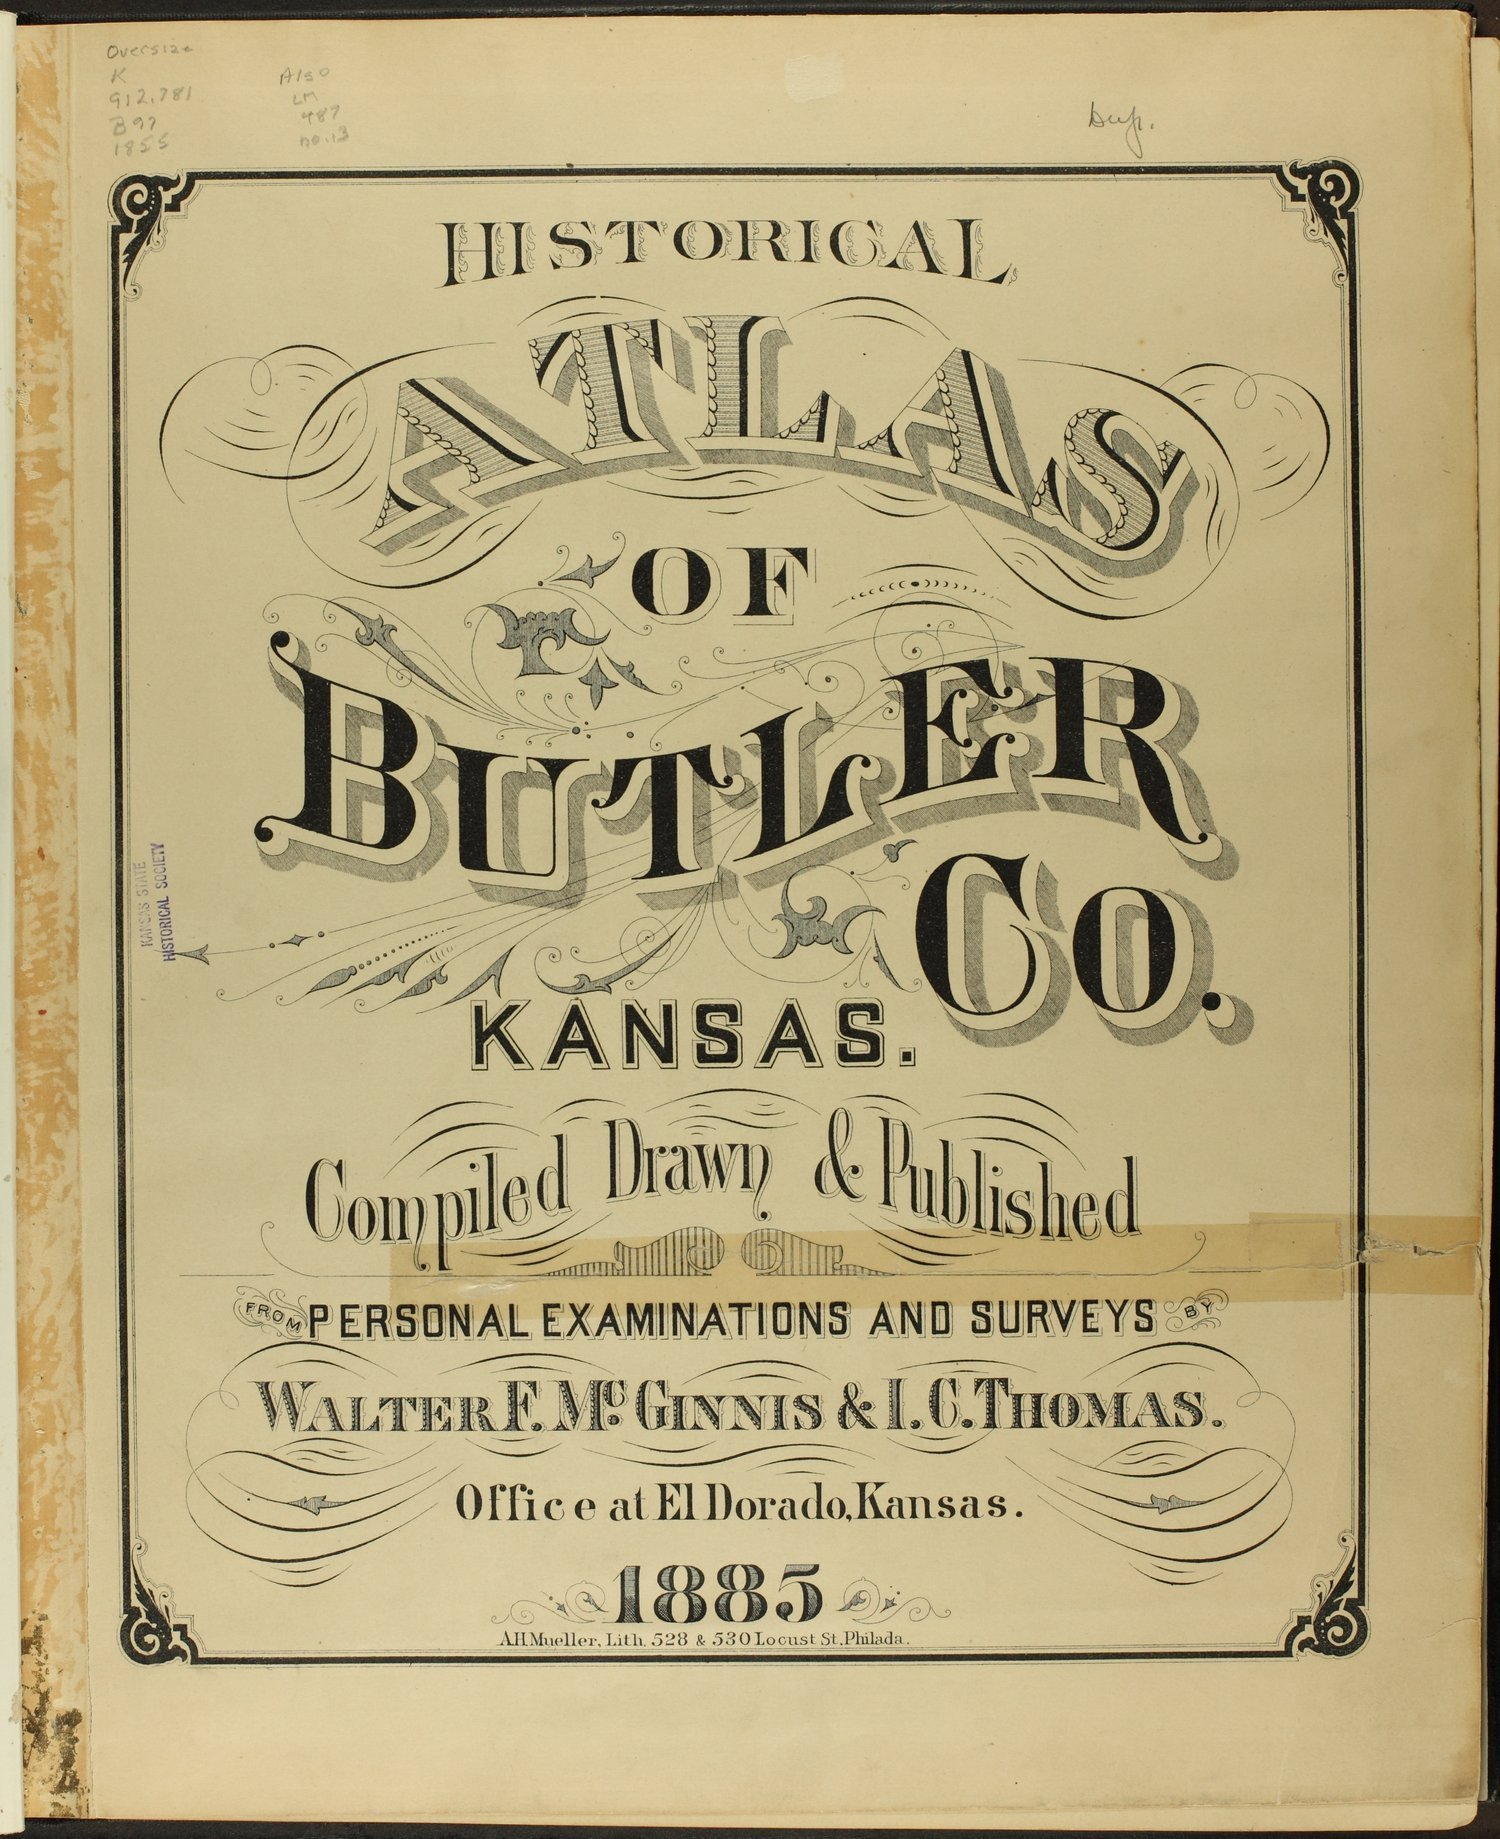 Historical atlas of Butler County, Kansas - Title Page